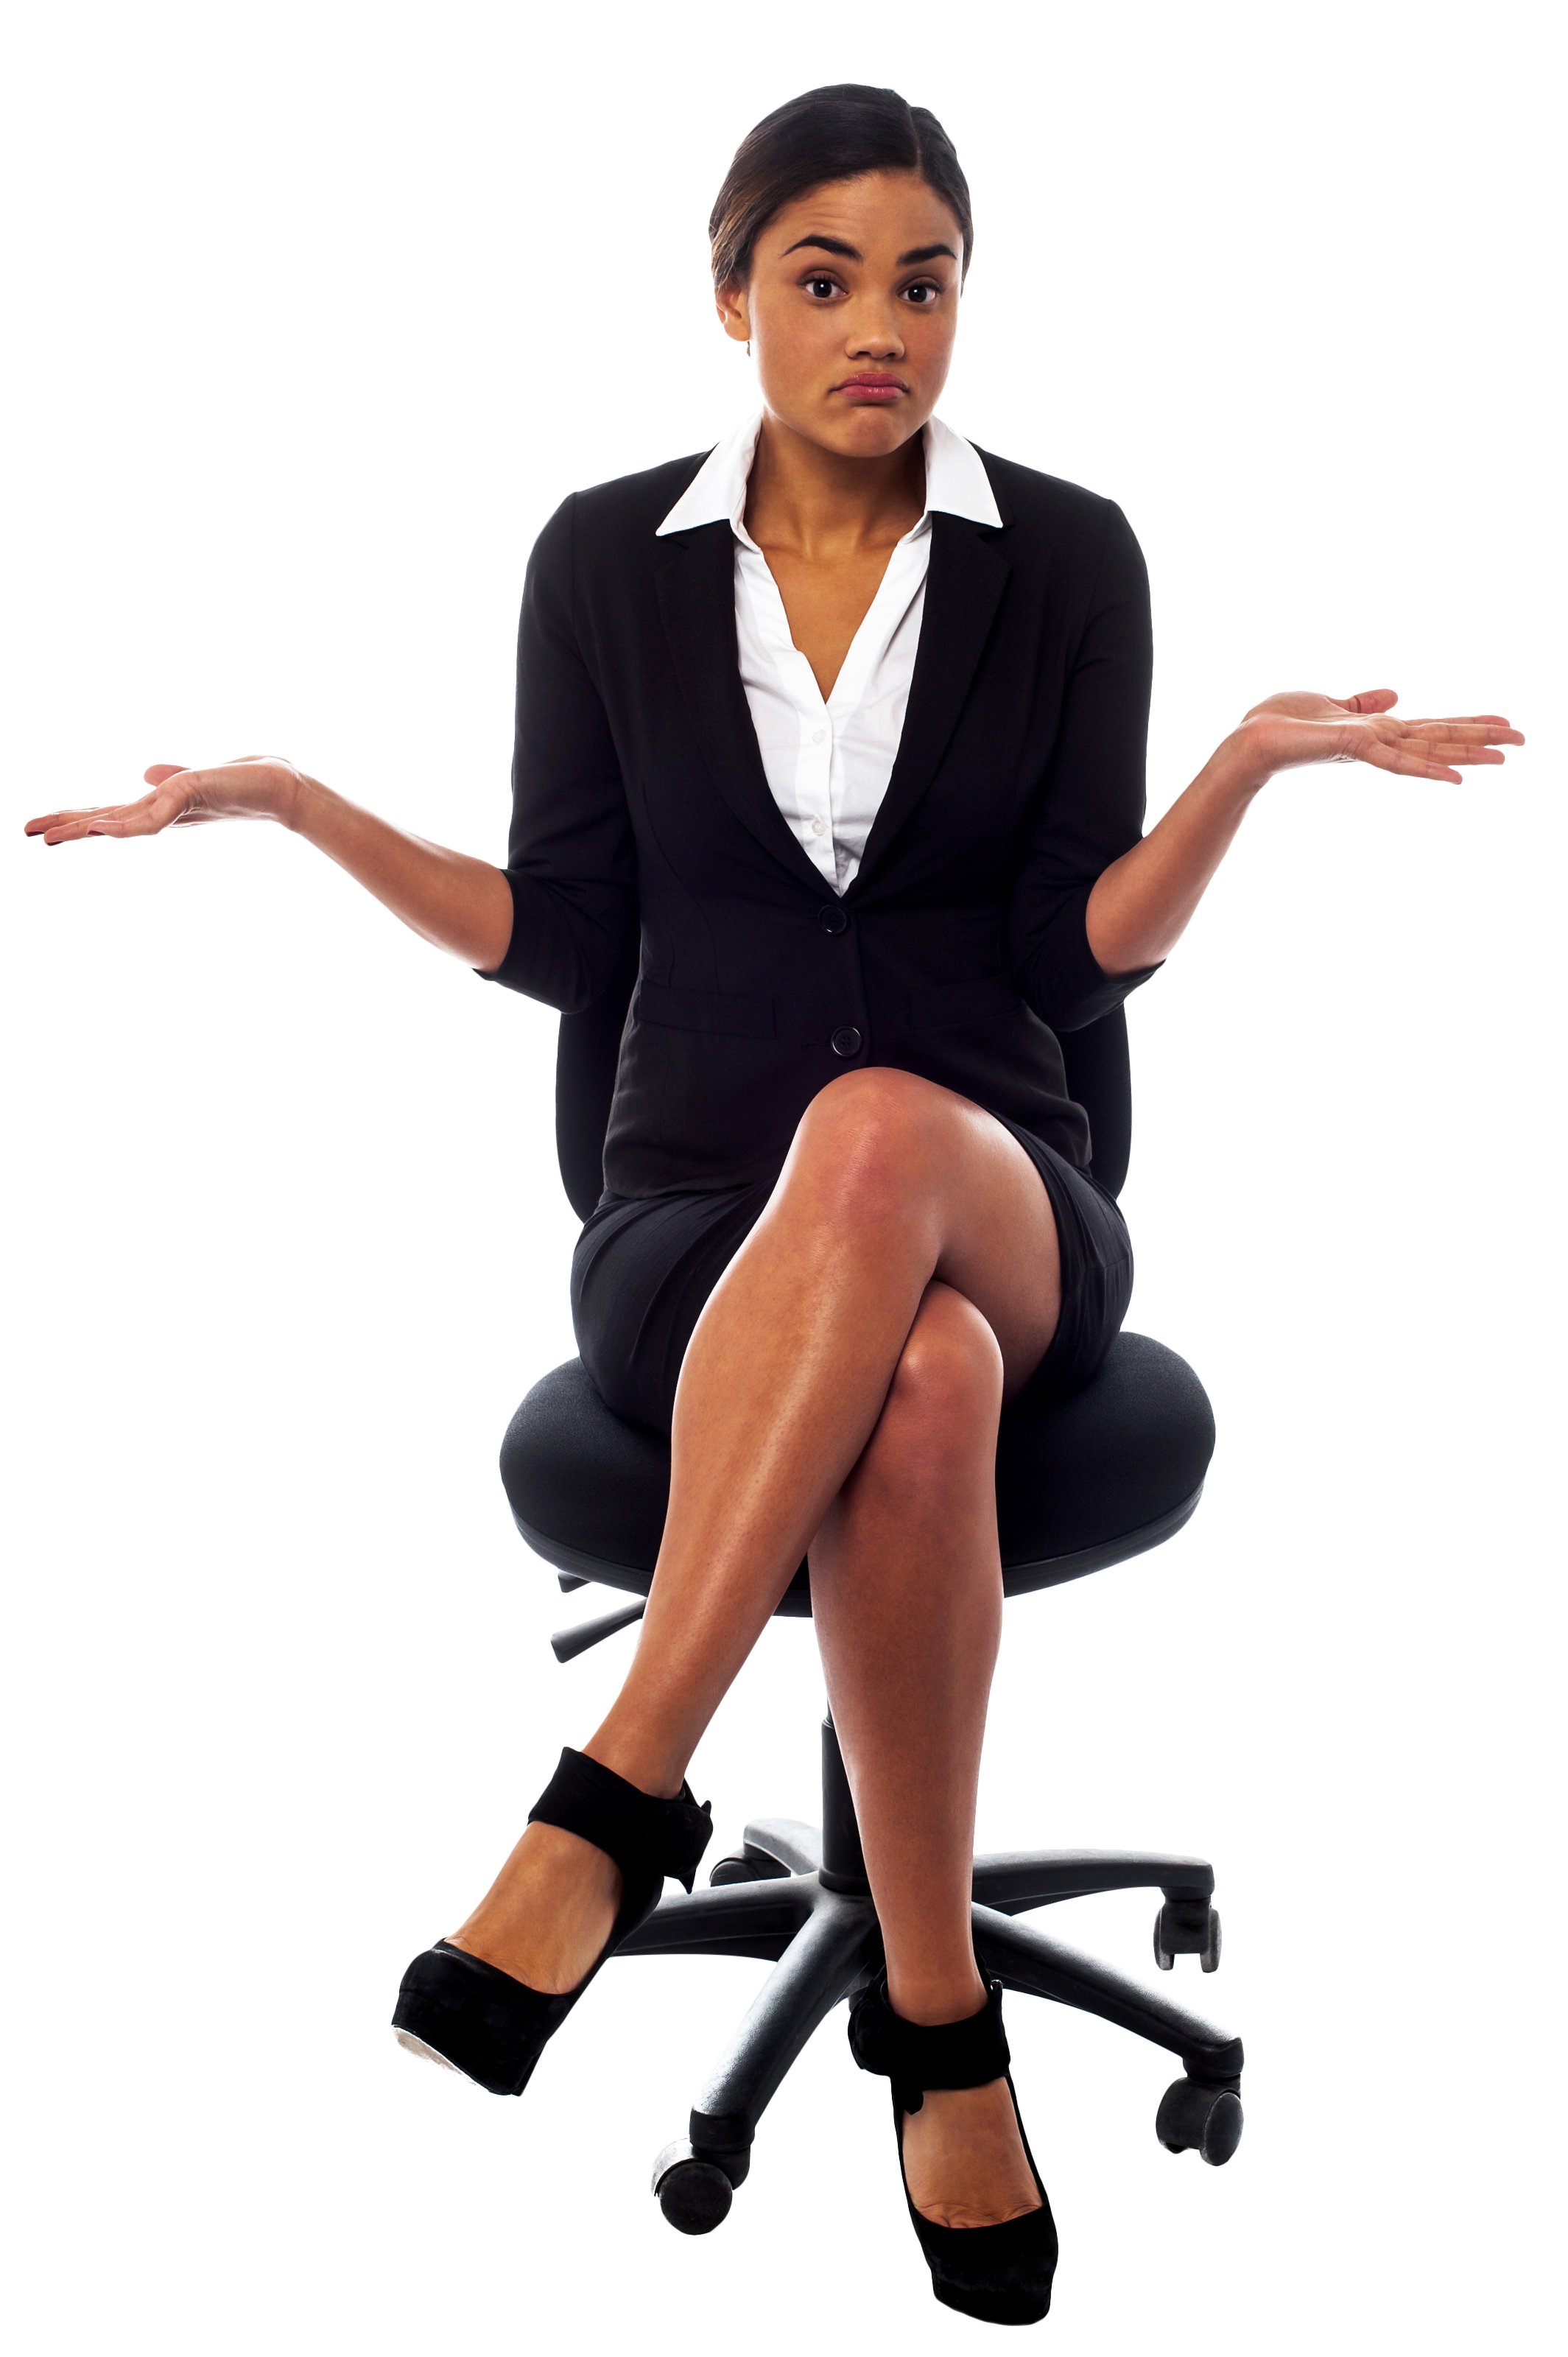 Women In Suit Png Image Suits For Women Dress Images Black White Dress